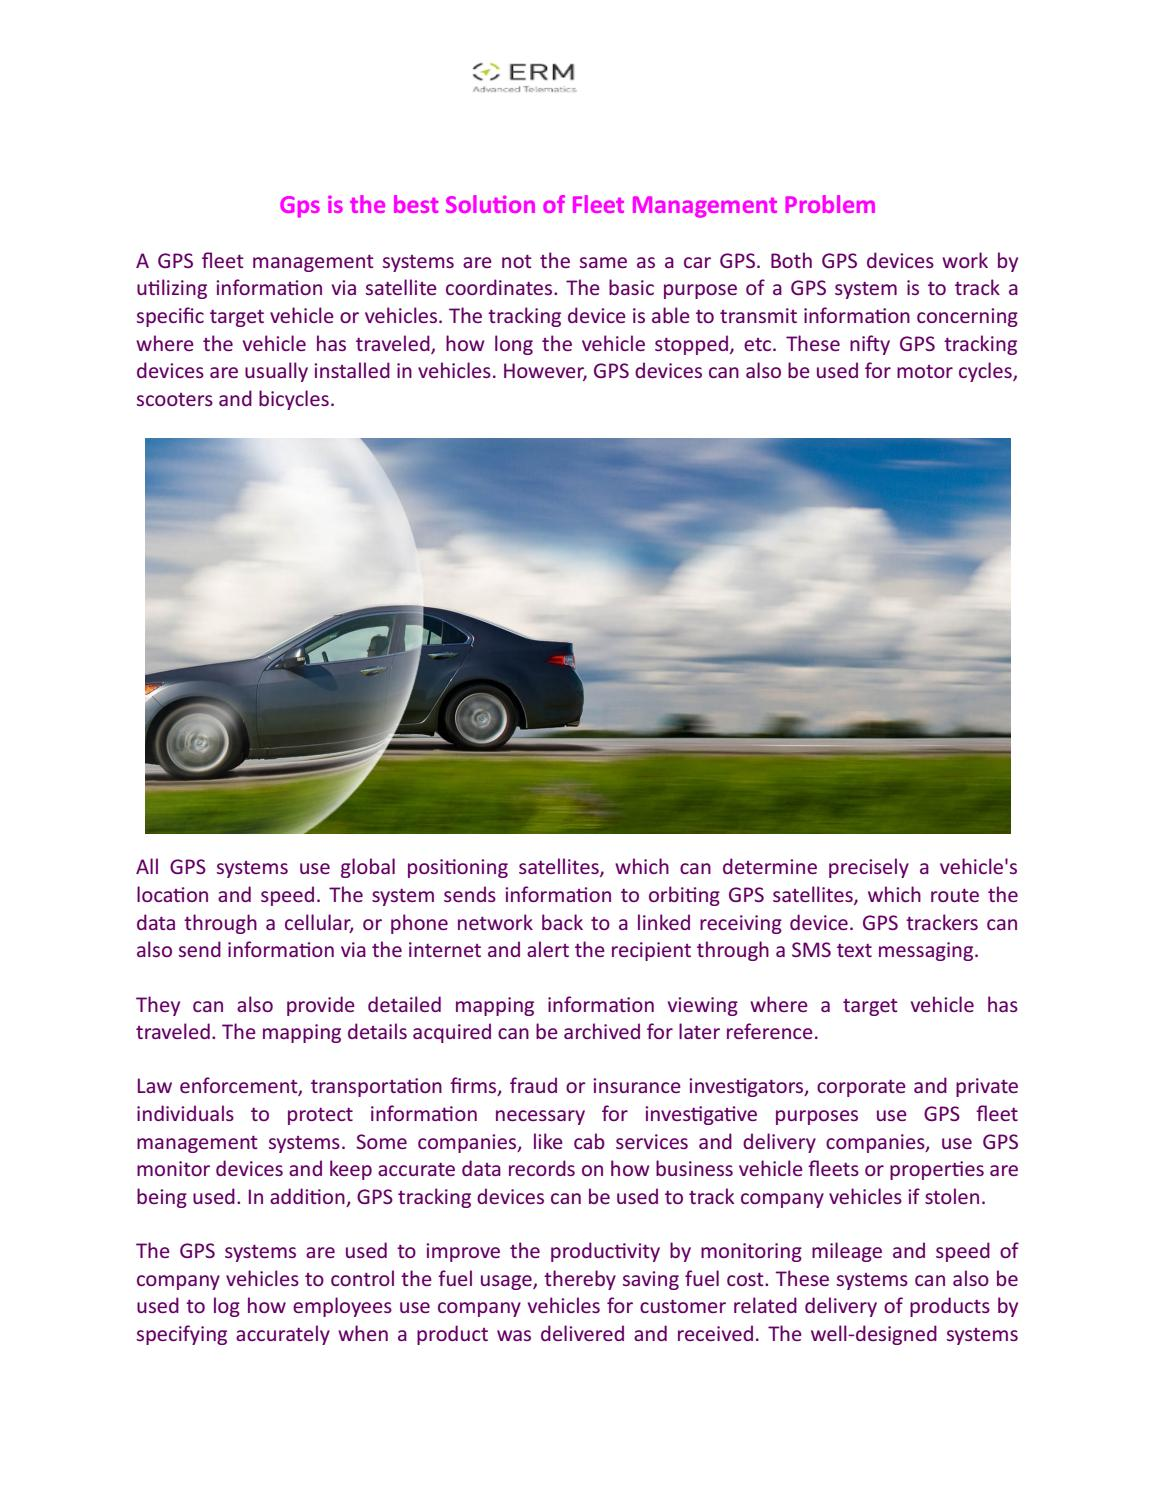 Gps is the best solution of fleet management problem by